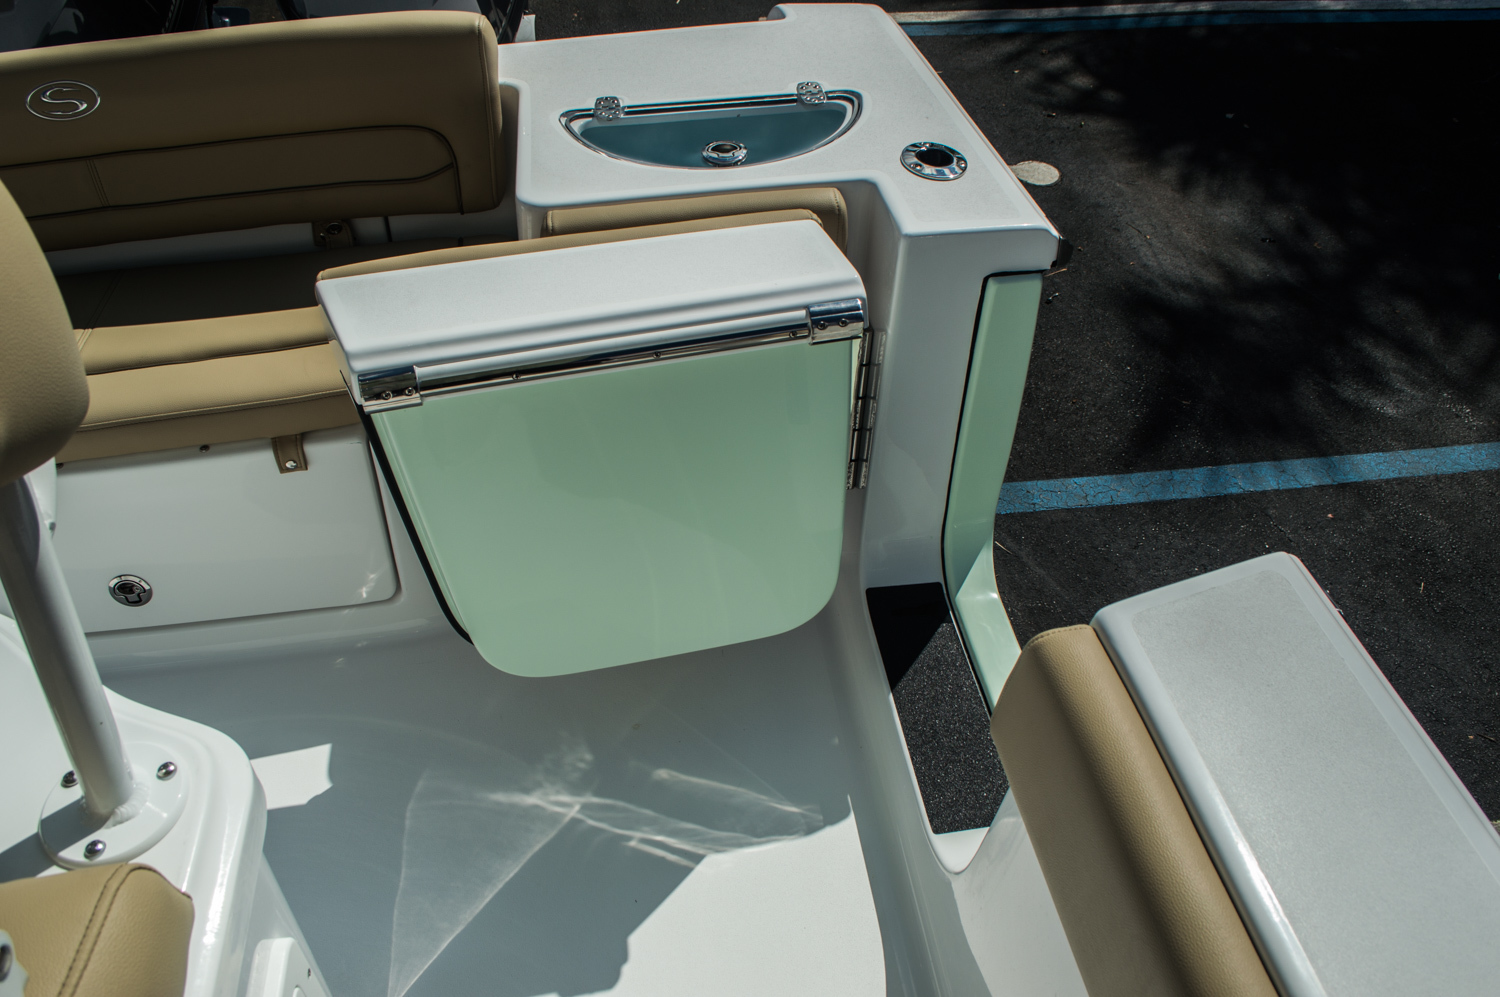 Thumbnail 54 for New 2016 Sportsman Heritage 251 Center Console boat for sale in Miami, FL